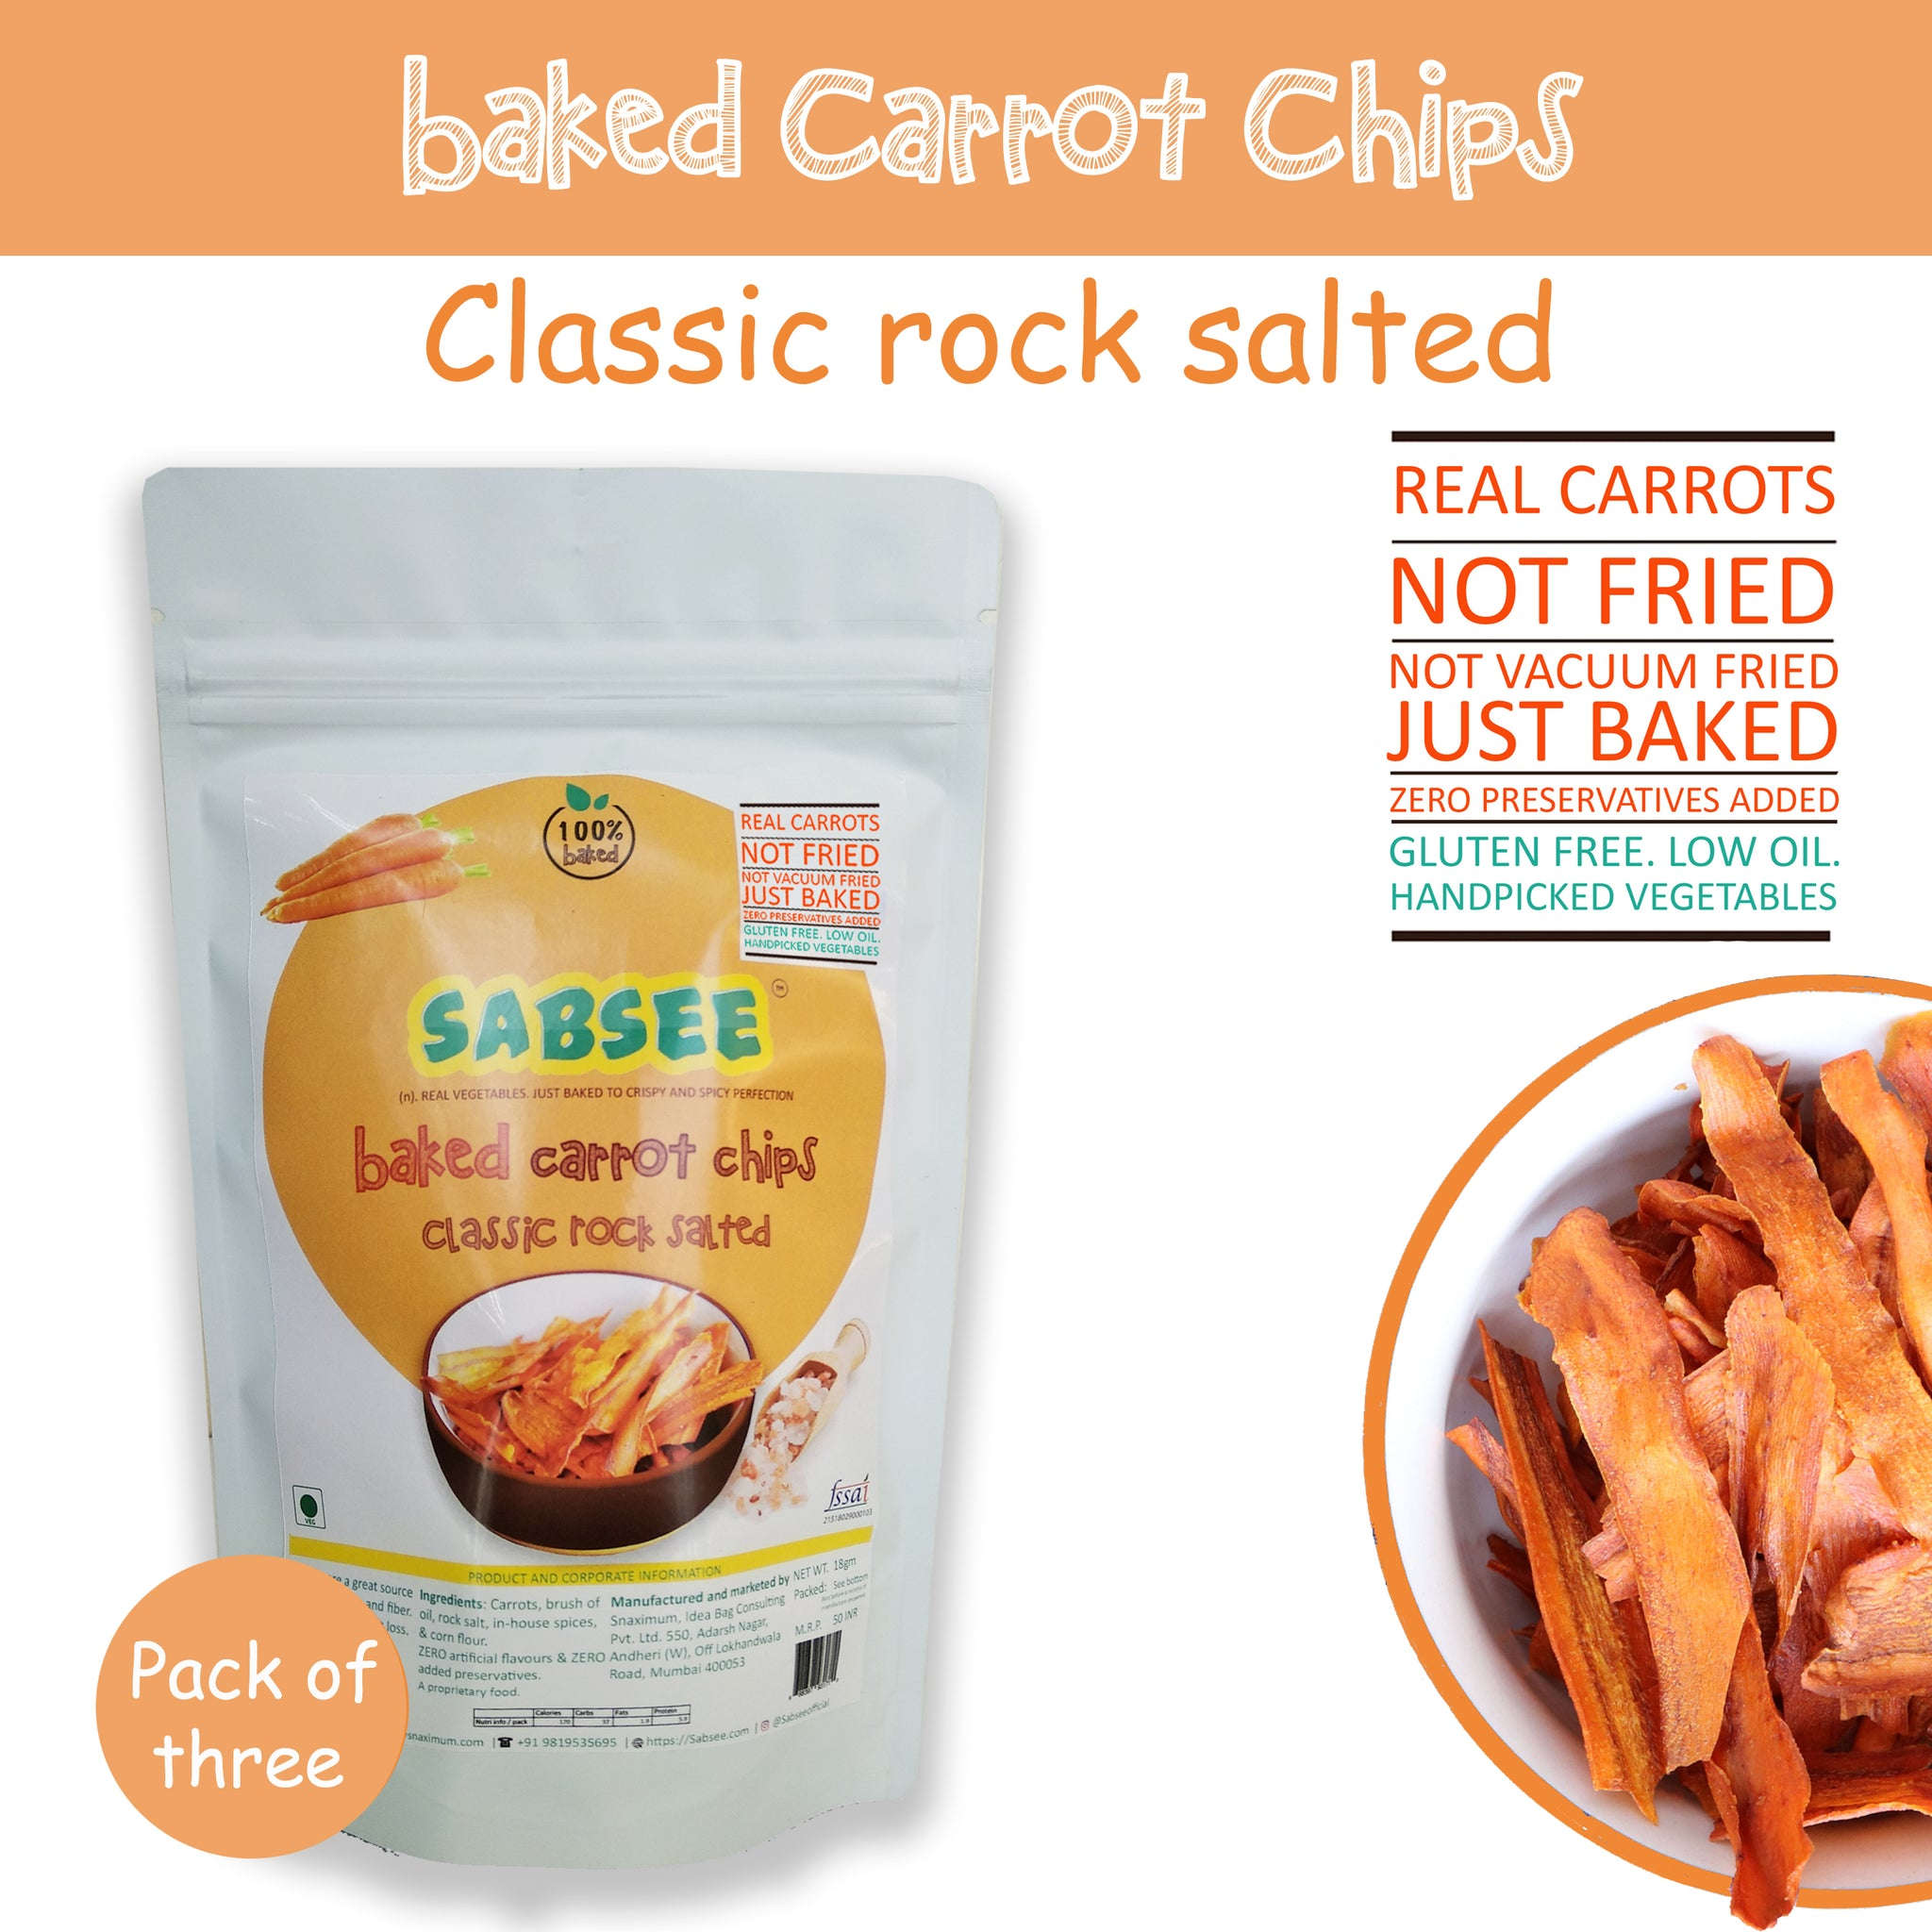 Baked carrot Chips - Classic rock salted